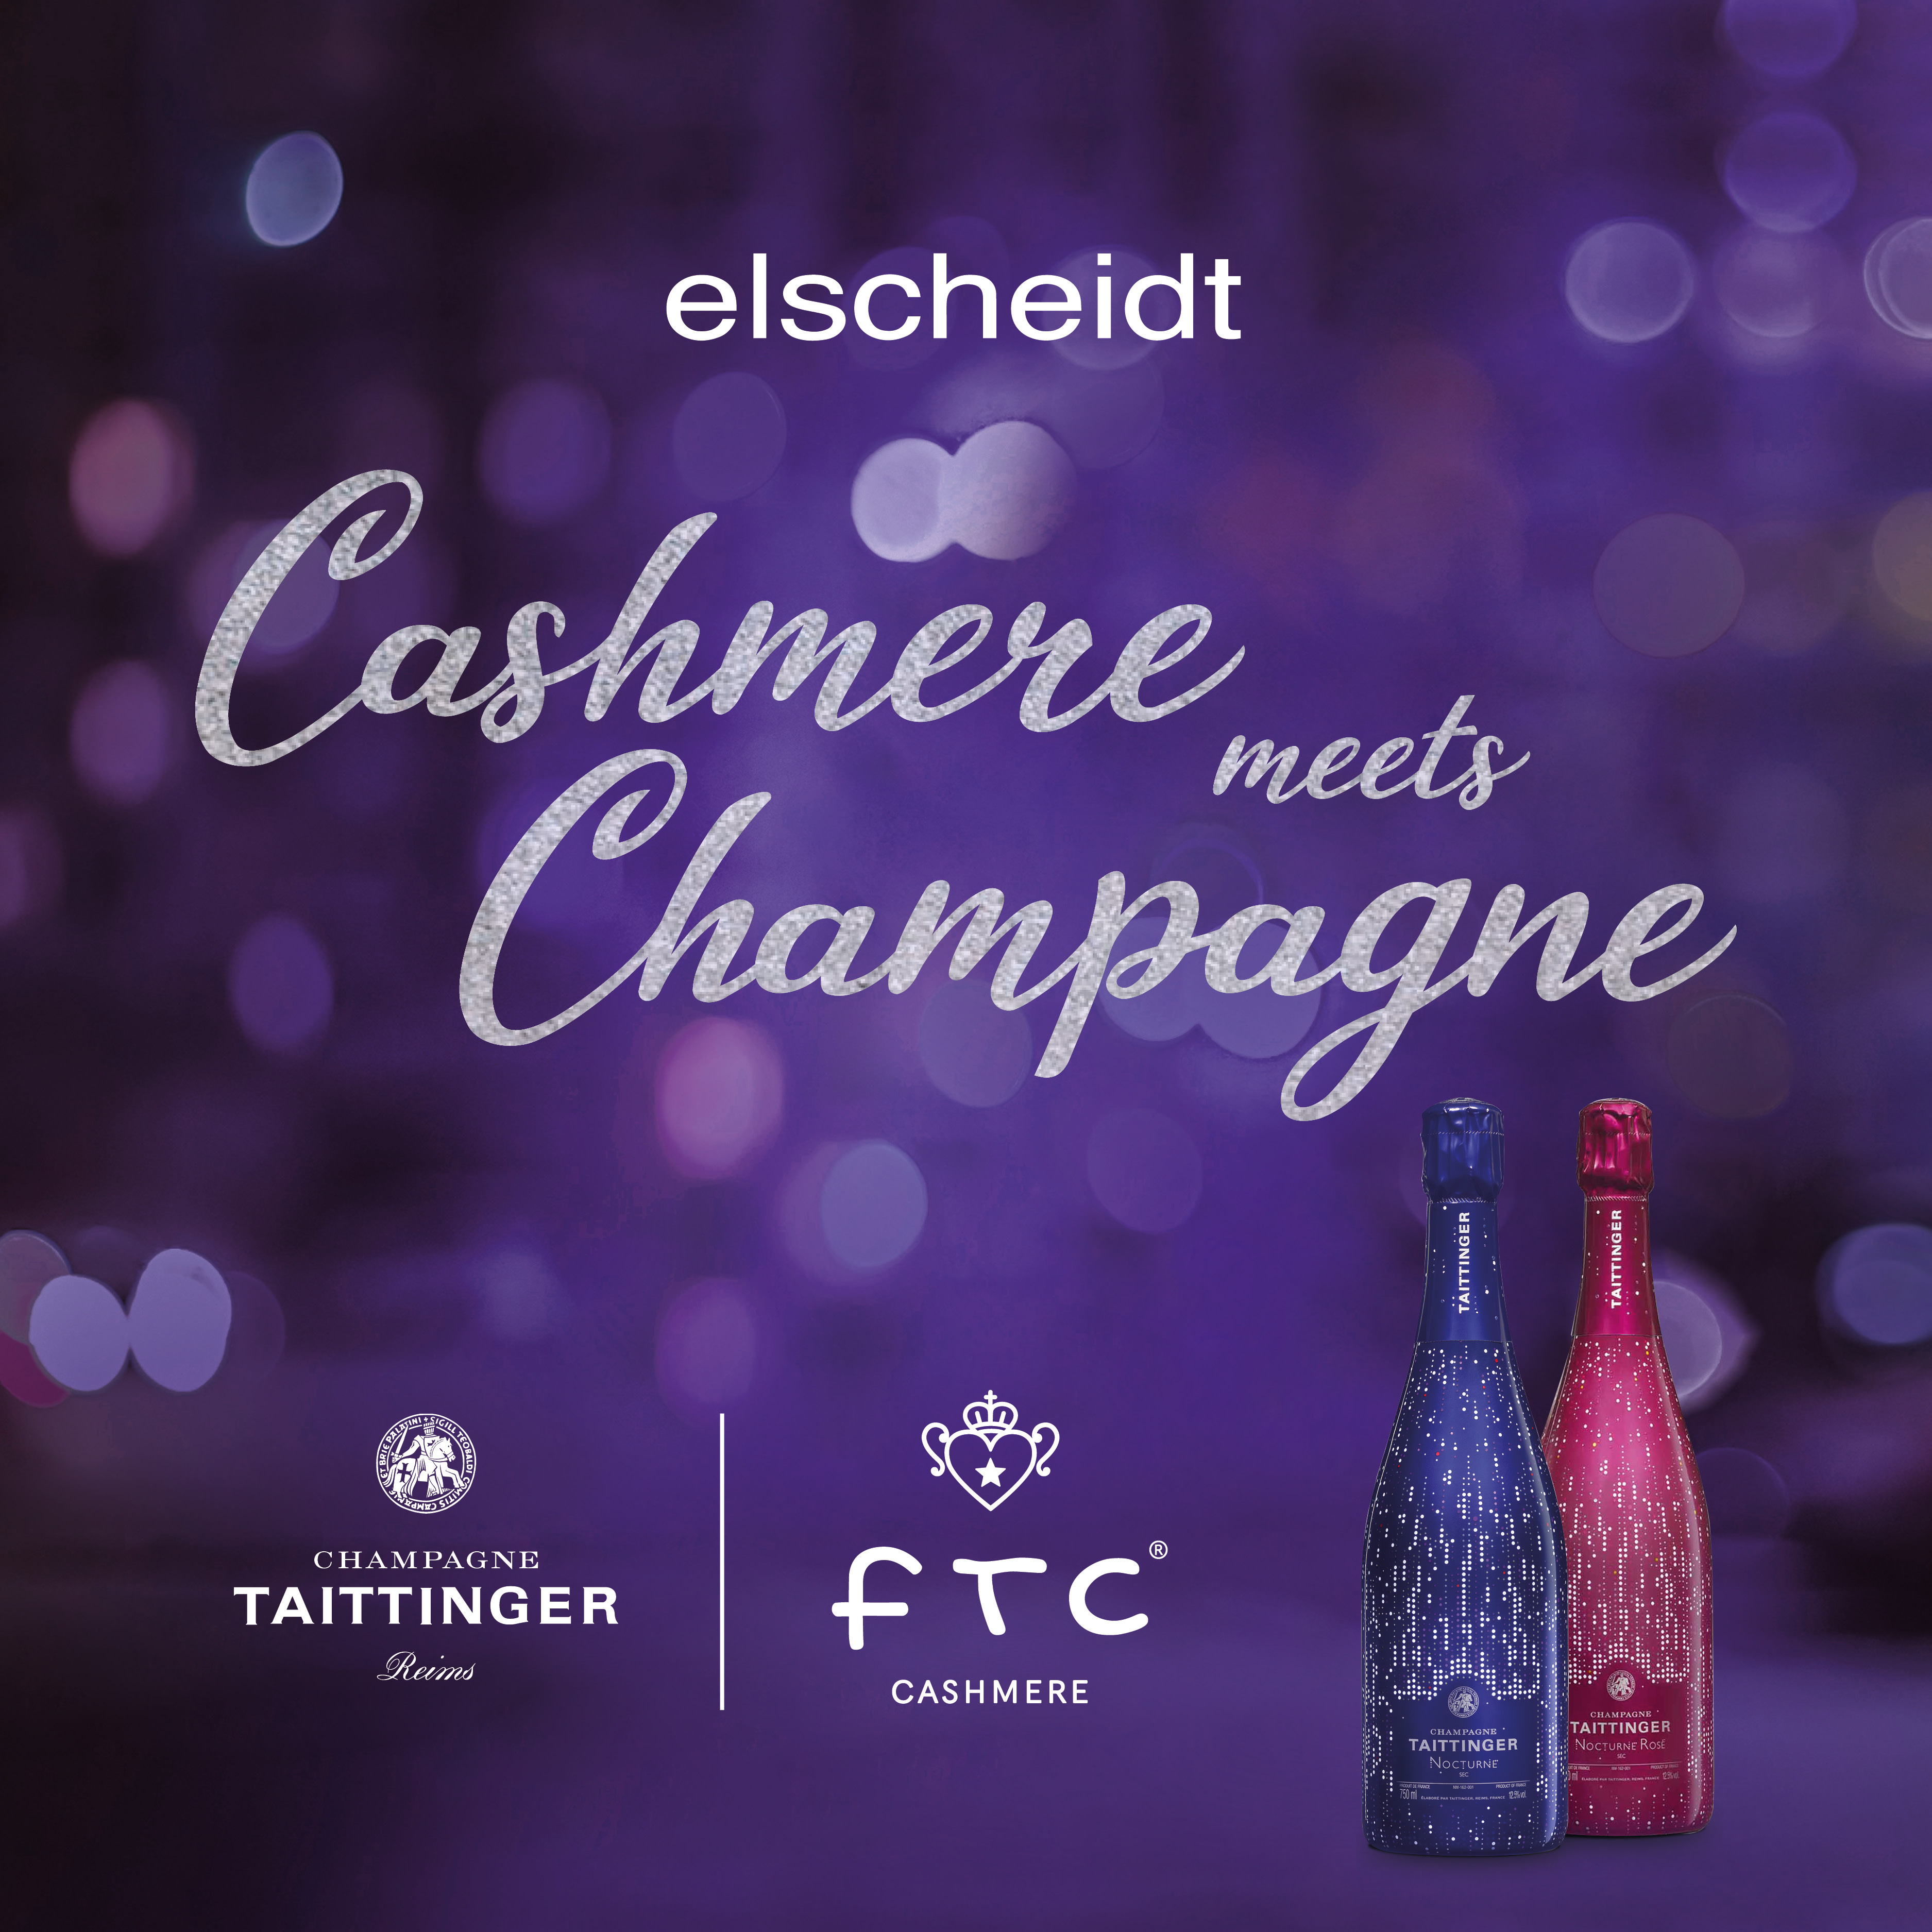 Cashmere meets Champagne